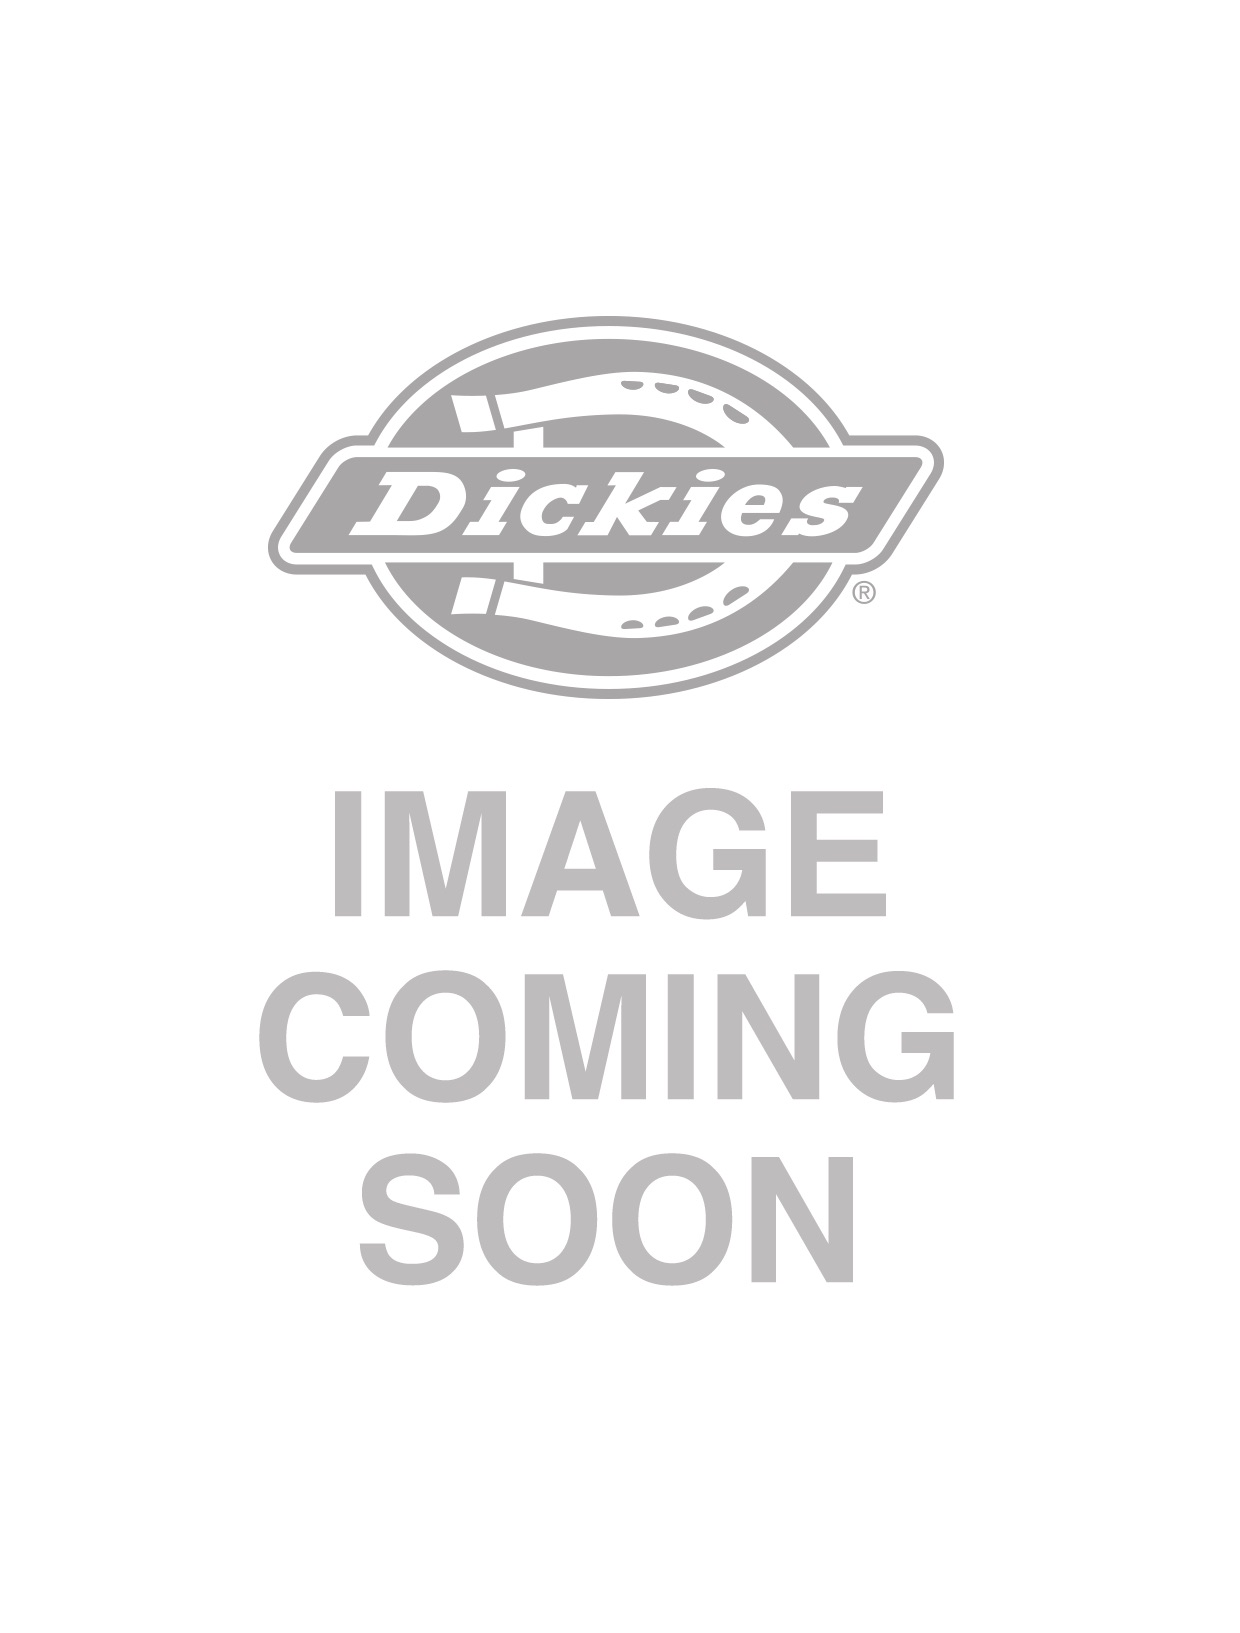 discount coupon arrives meticulous dyeing processes Dickies Cornwell Jacket